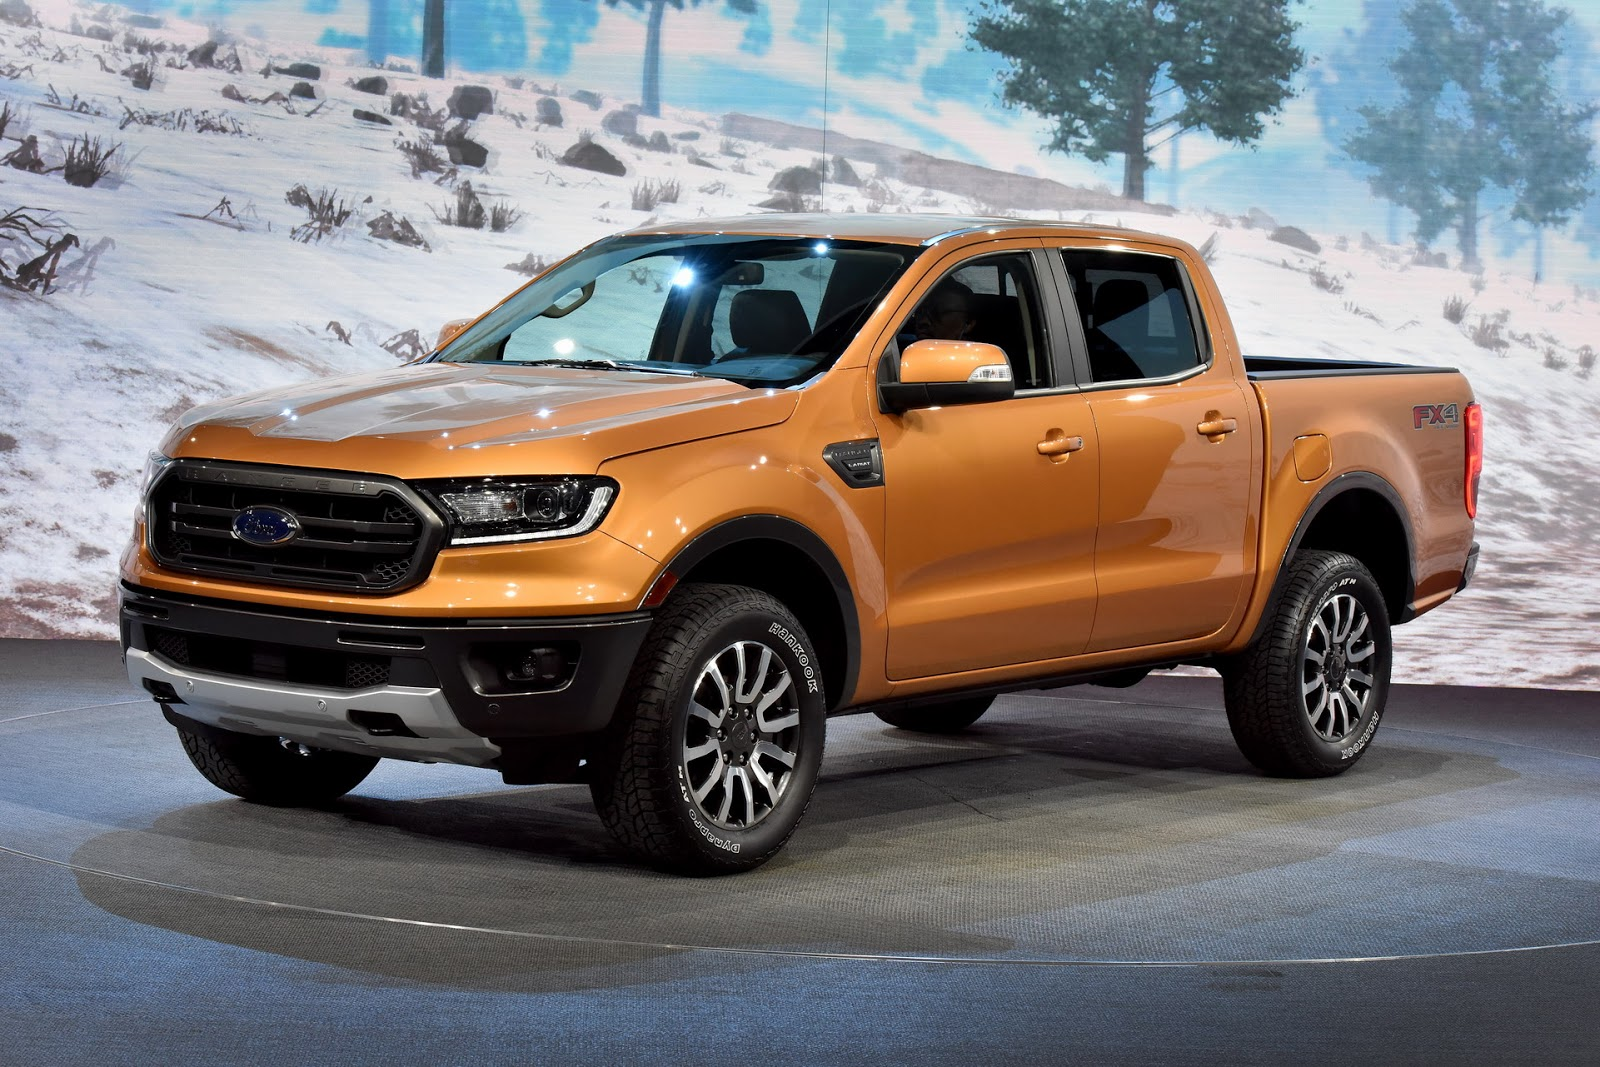 2019 ford ranger wants to become america s default midsize truck carscoops. Black Bedroom Furniture Sets. Home Design Ideas